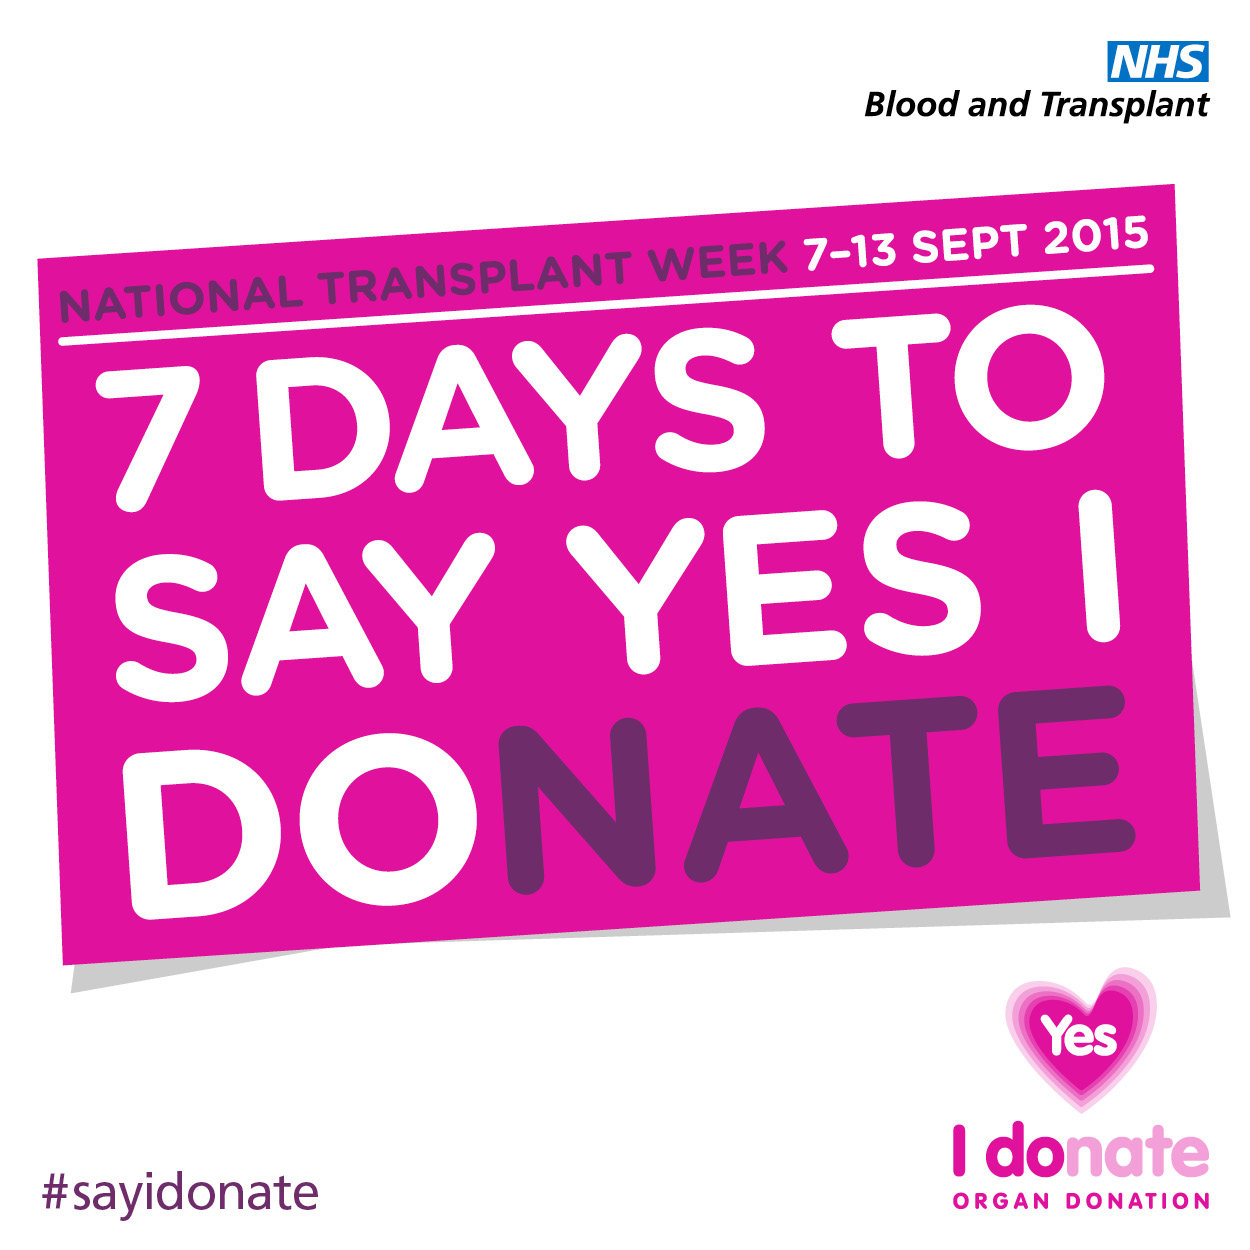 National Transplant Week 2015